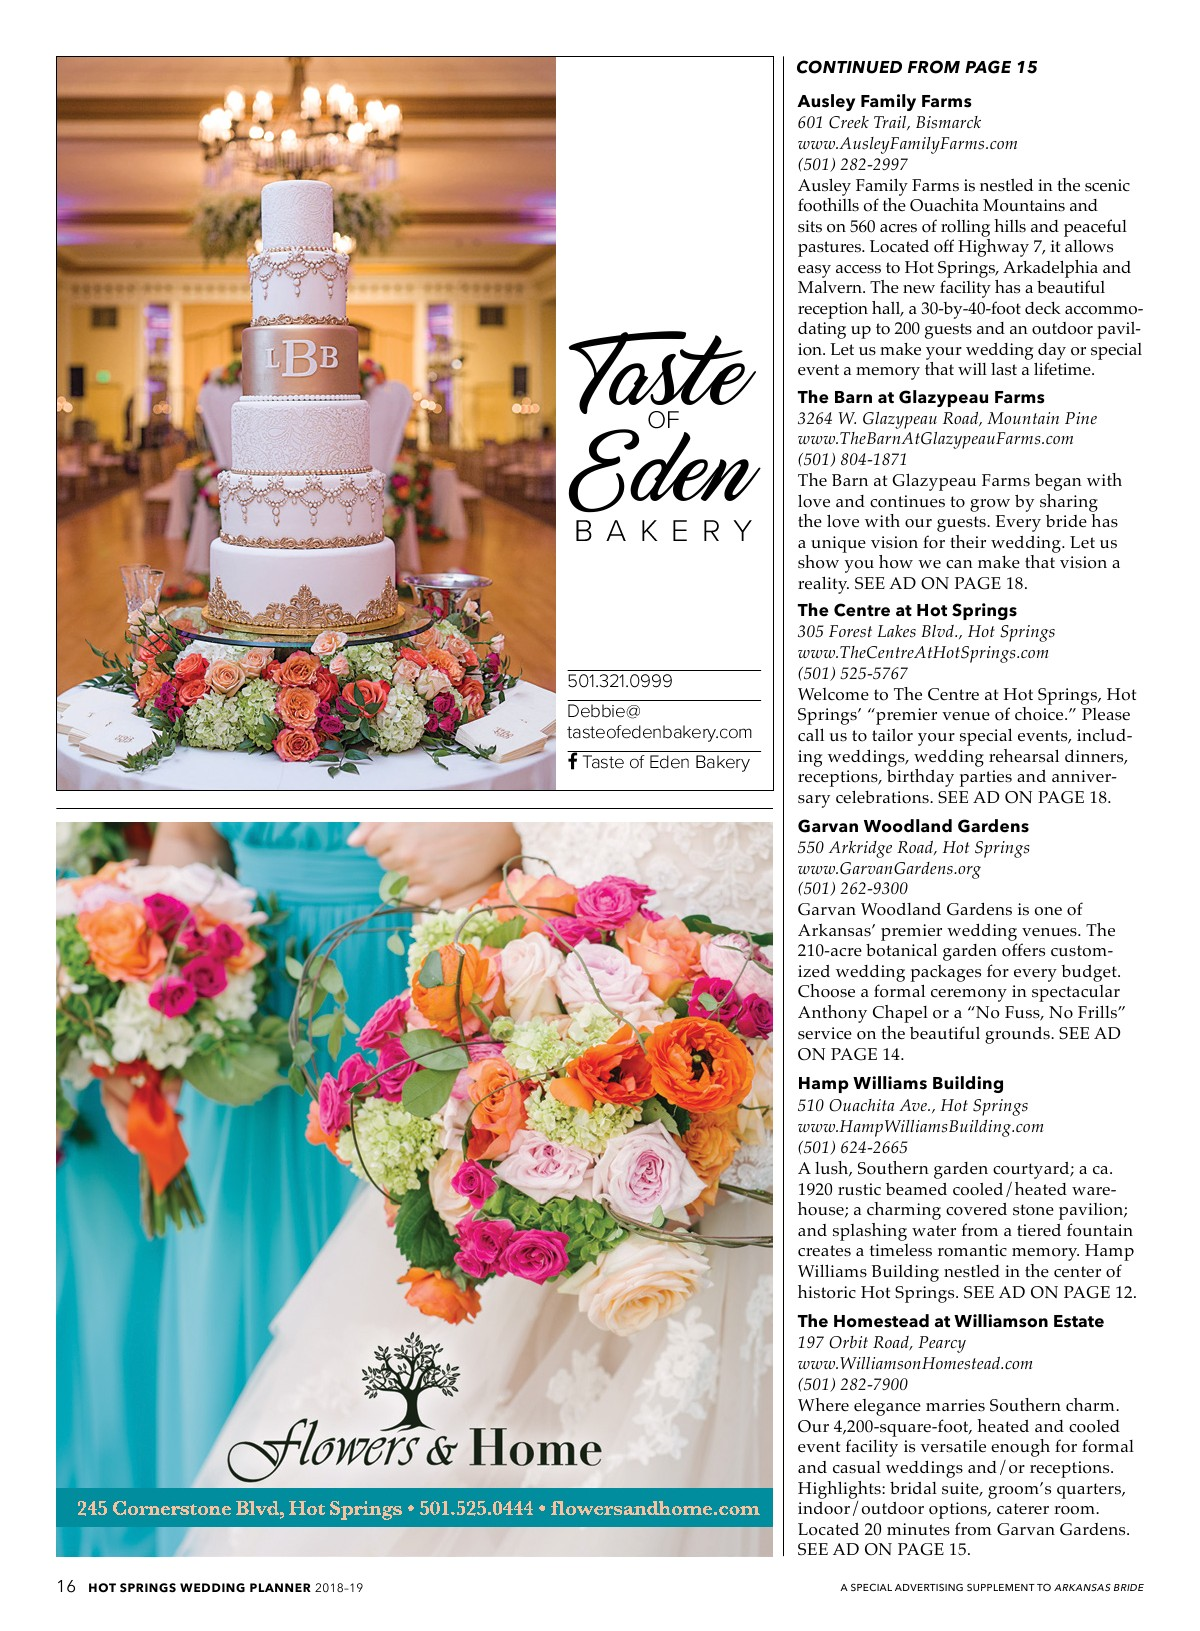 Hot Springs Wedding Planner 2018 Powered By Pageturnpro